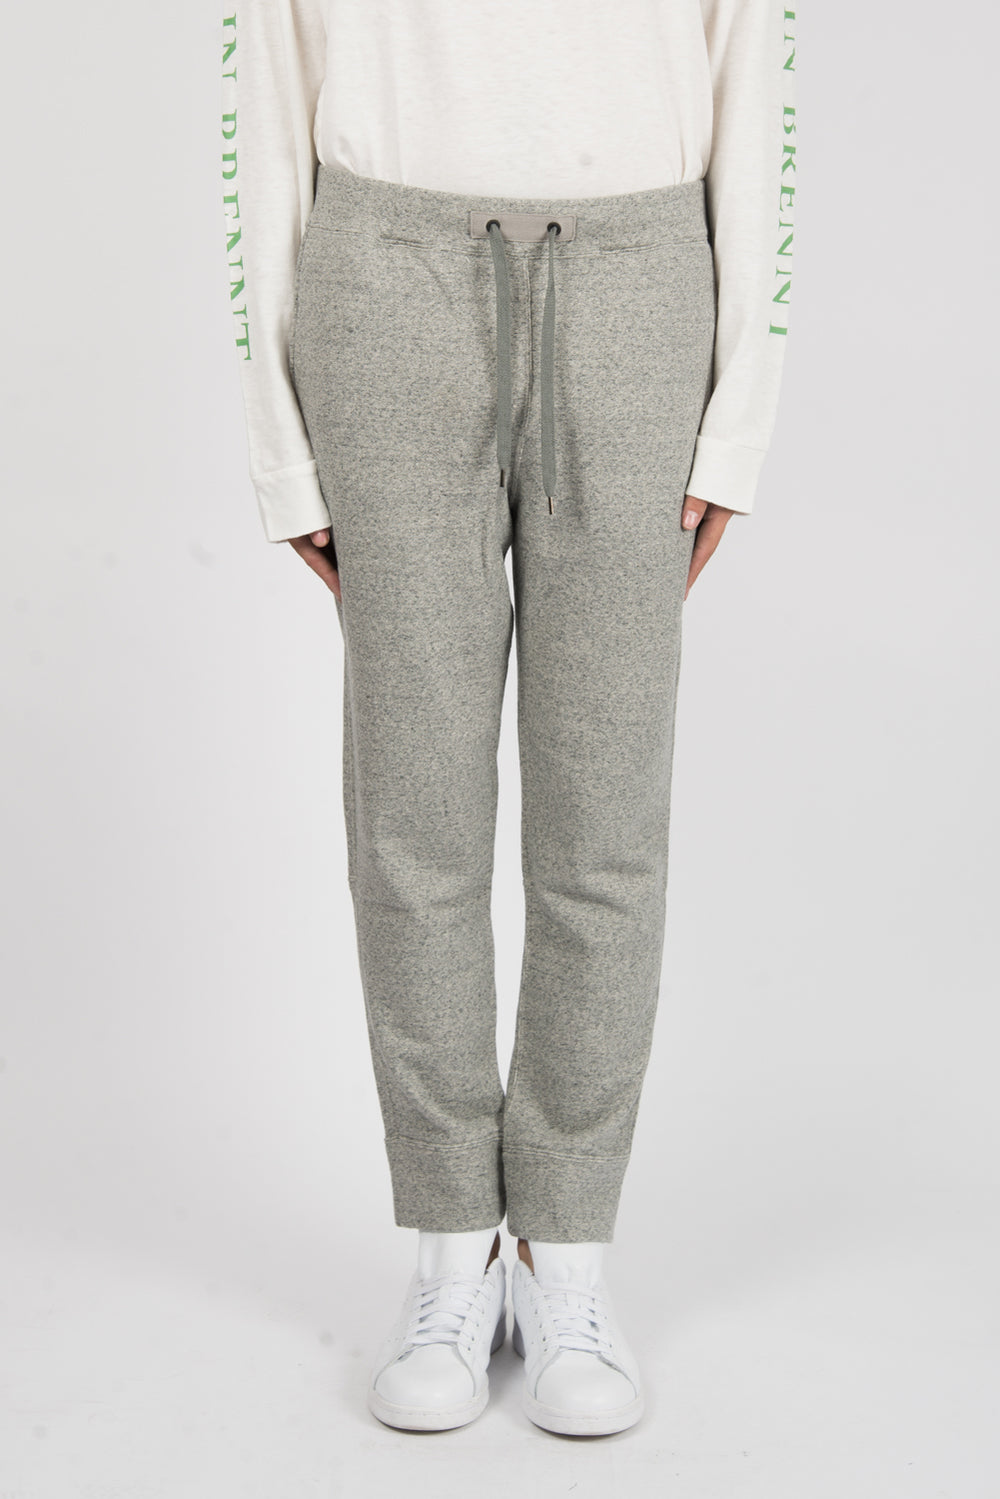 Robert Geller The Sweat Pant In Grey Melange